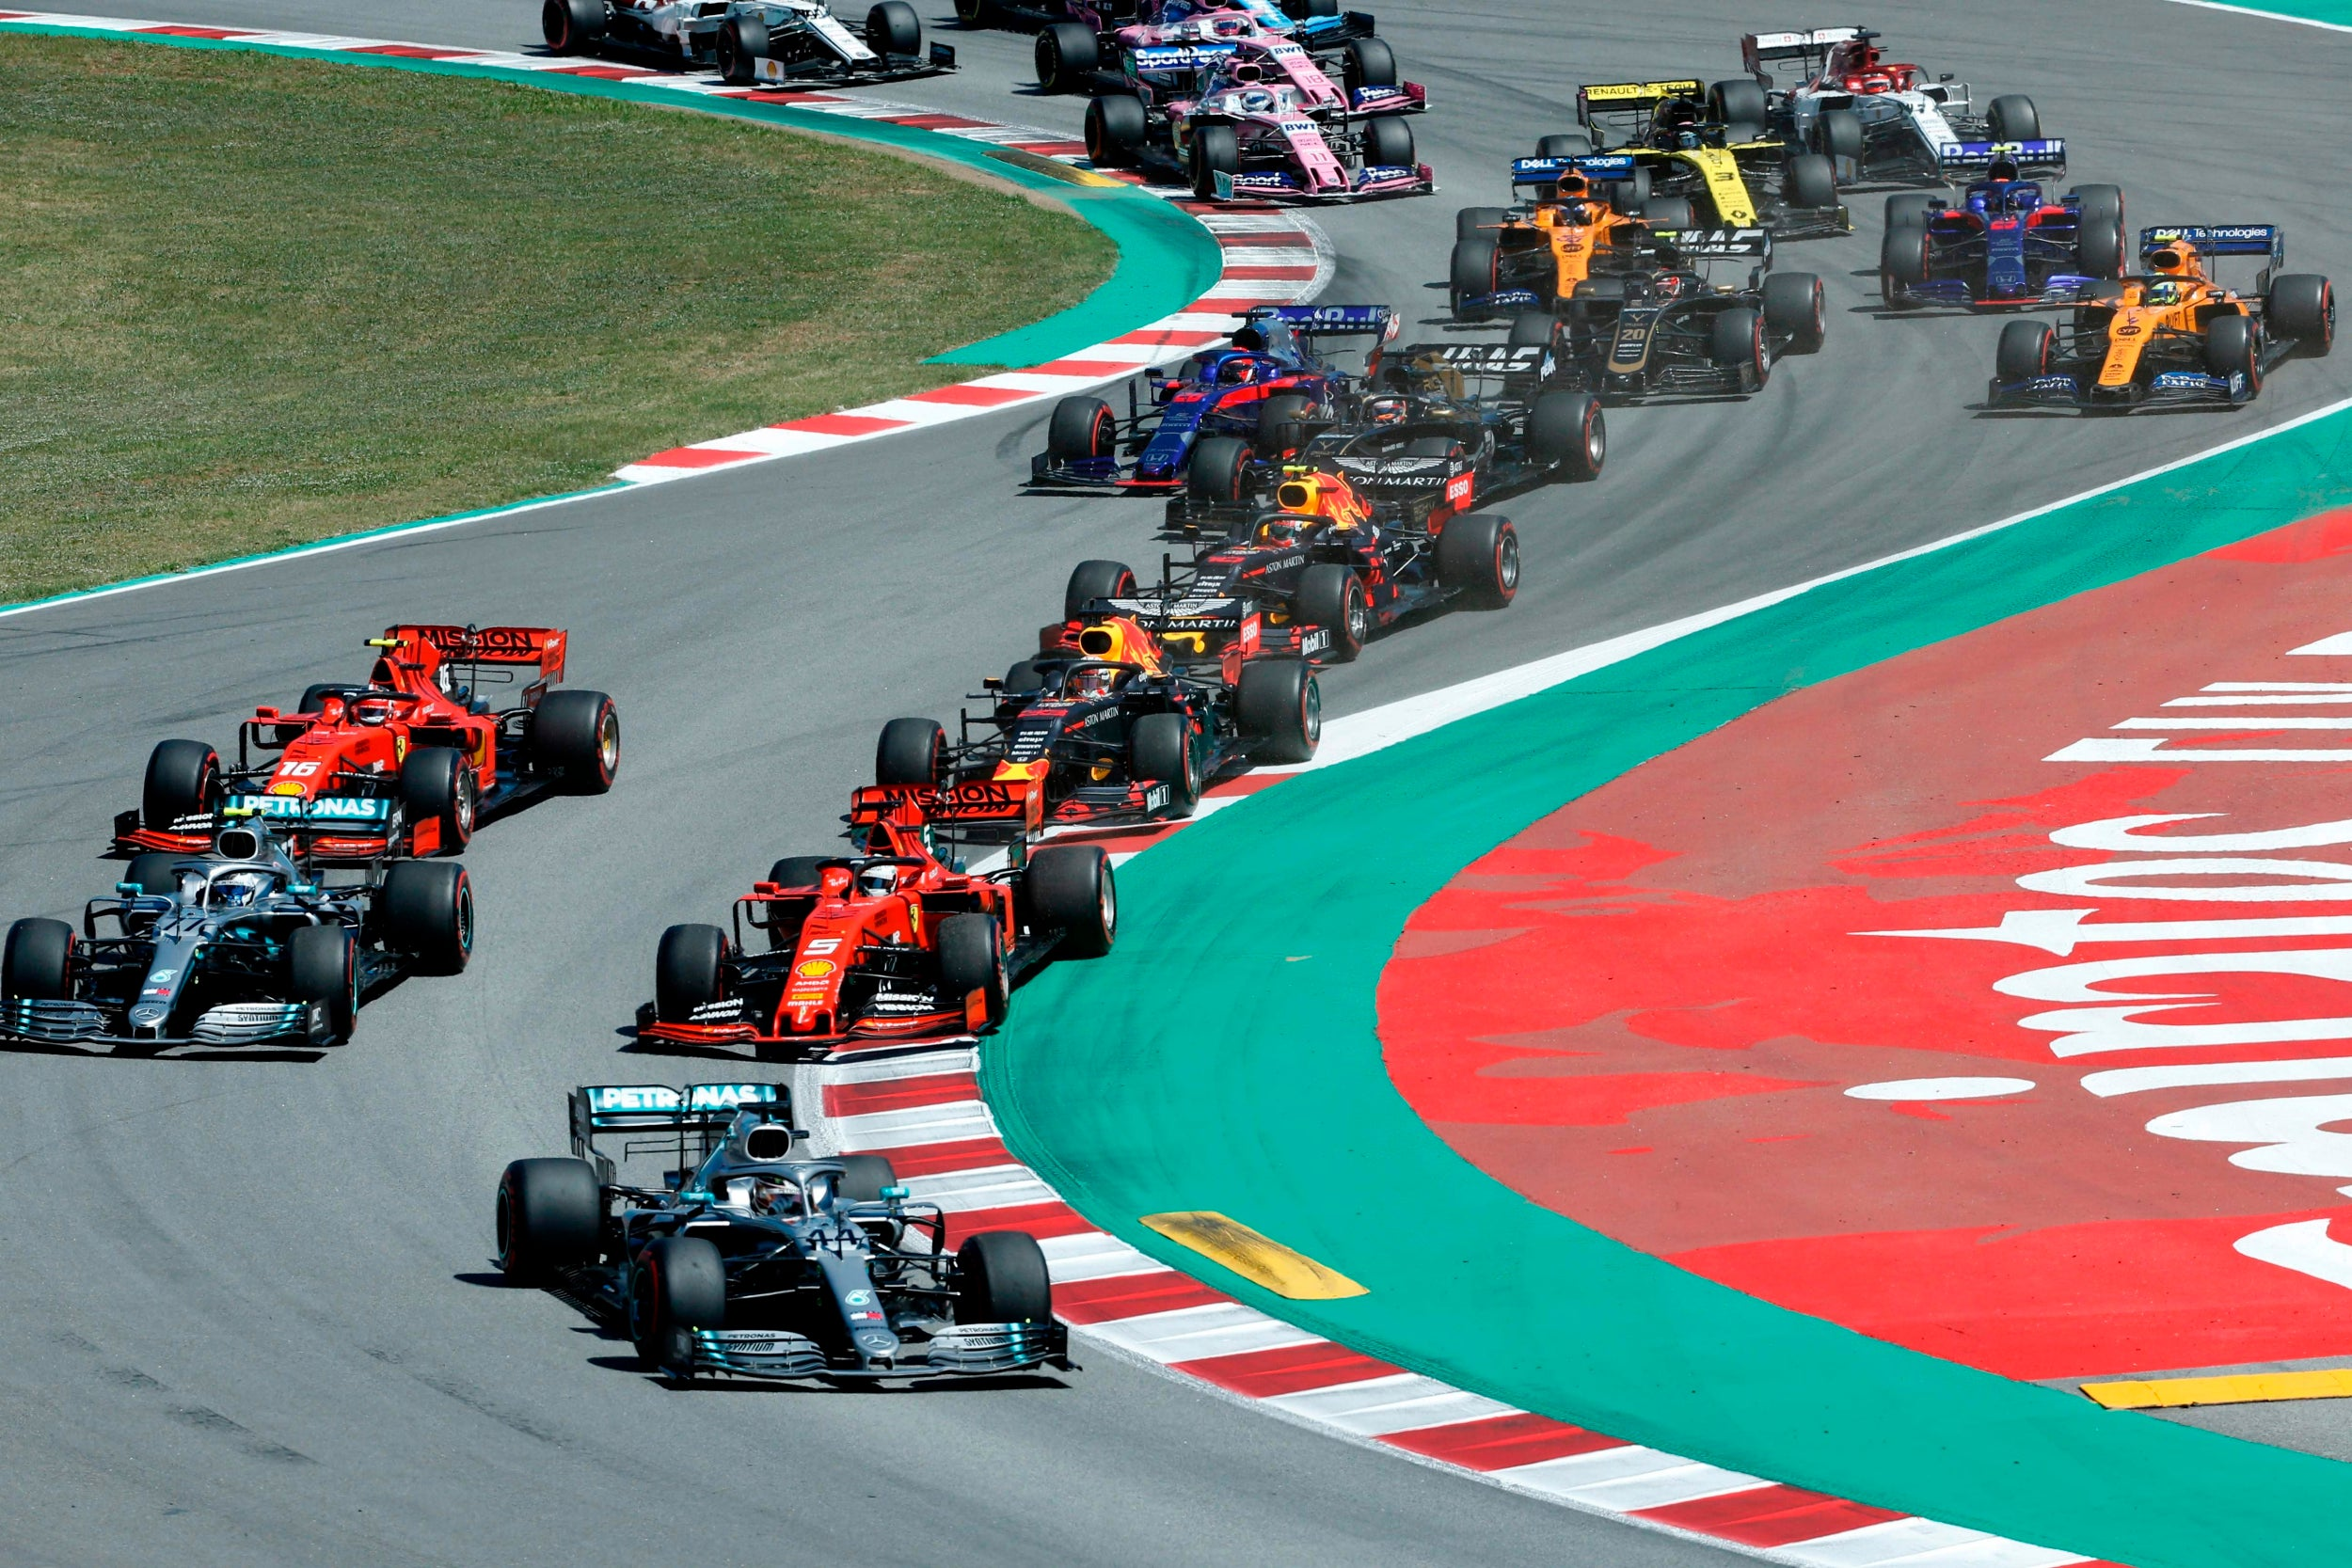 When is the Spanish Grand Prix and what time does it start?